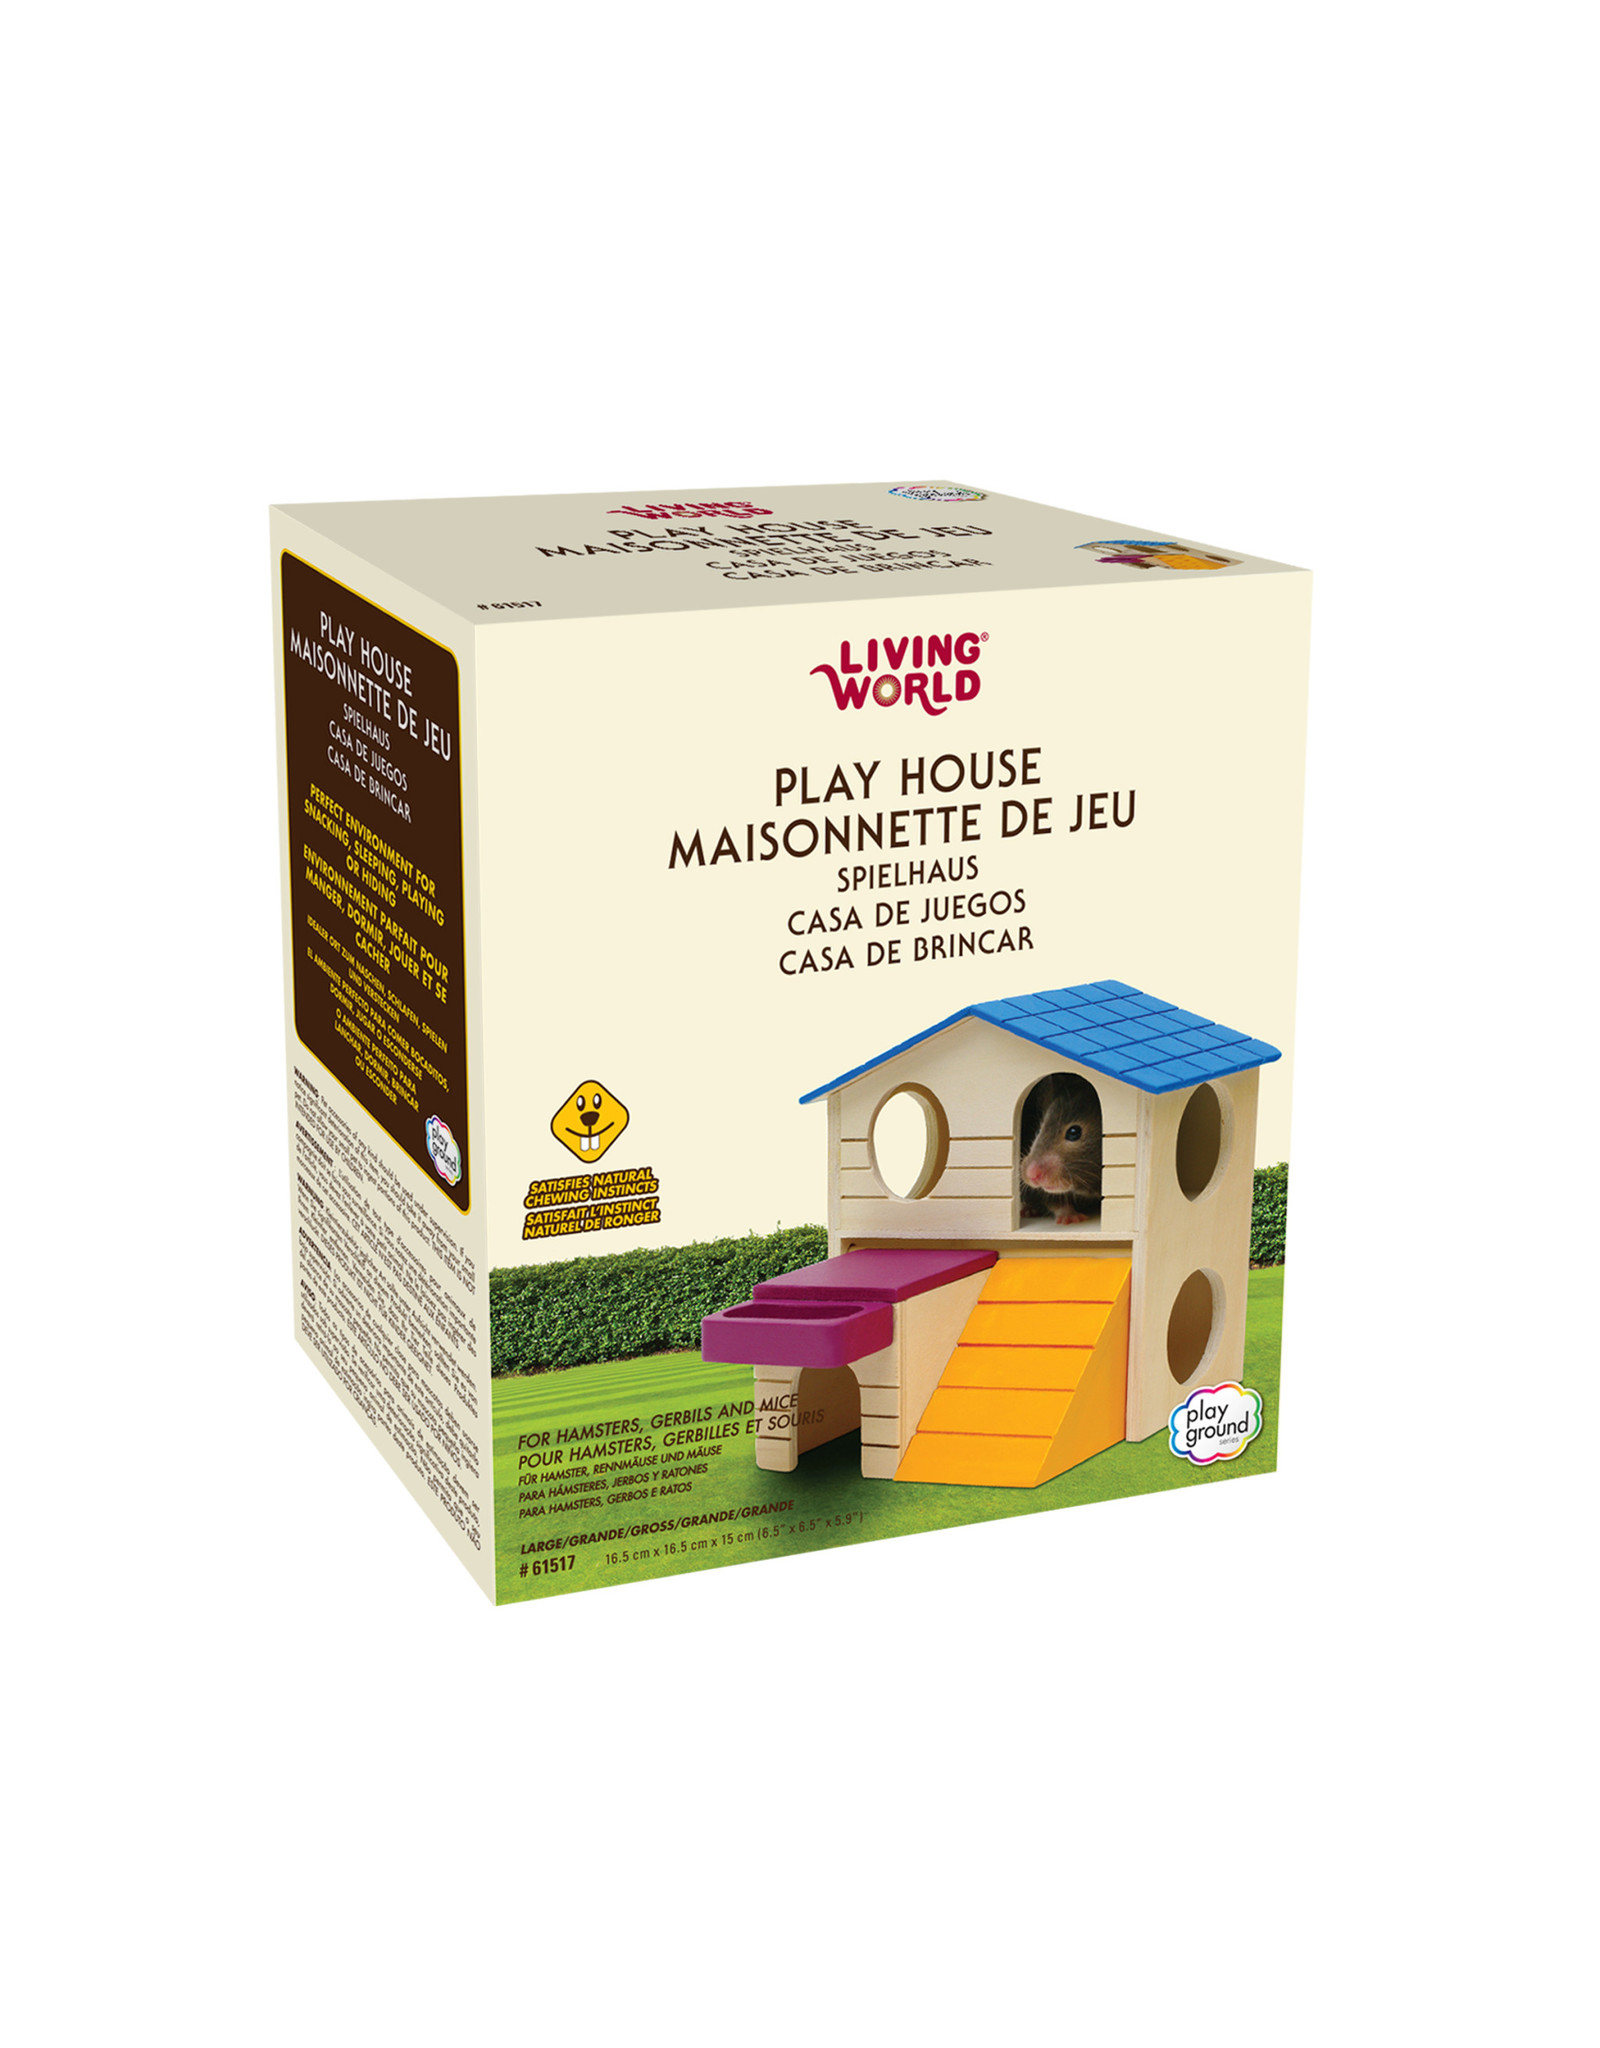 LW - Living World Living World Playground Play House - Large - 16.5 x 16.5 x 15 cm (6.5 x 6.5 x 5.9in)